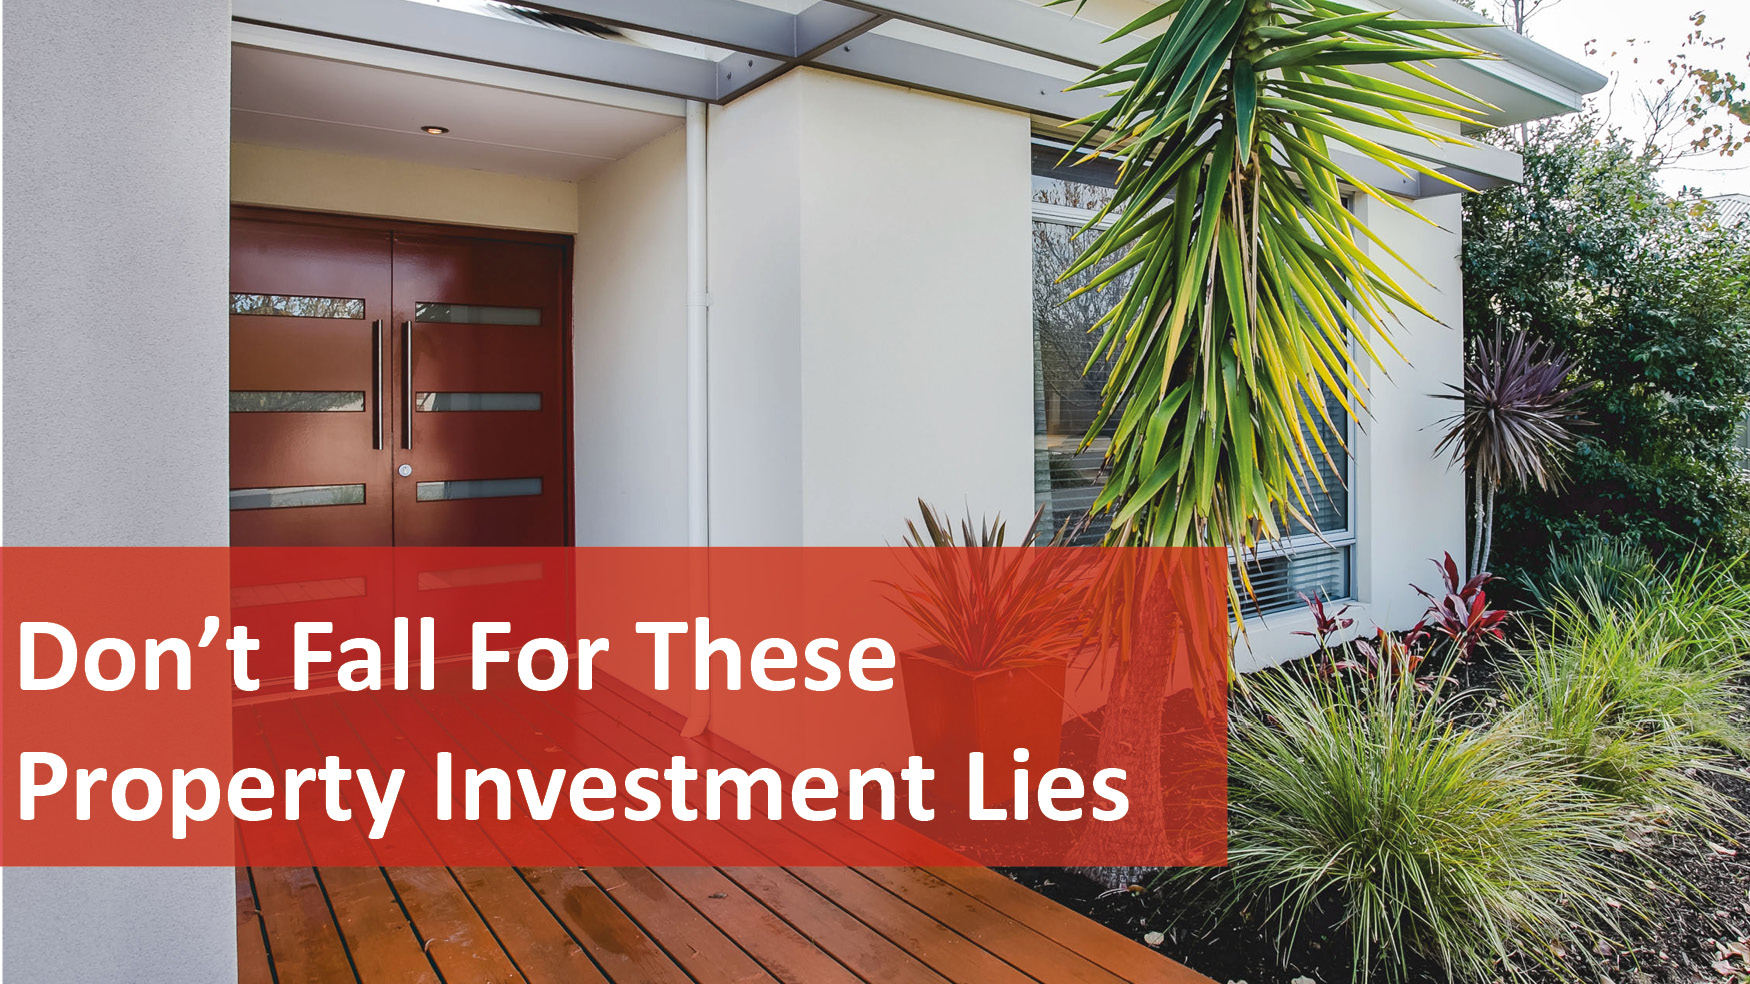 We Love Rentals Don't Fall For These Property Investment Lies